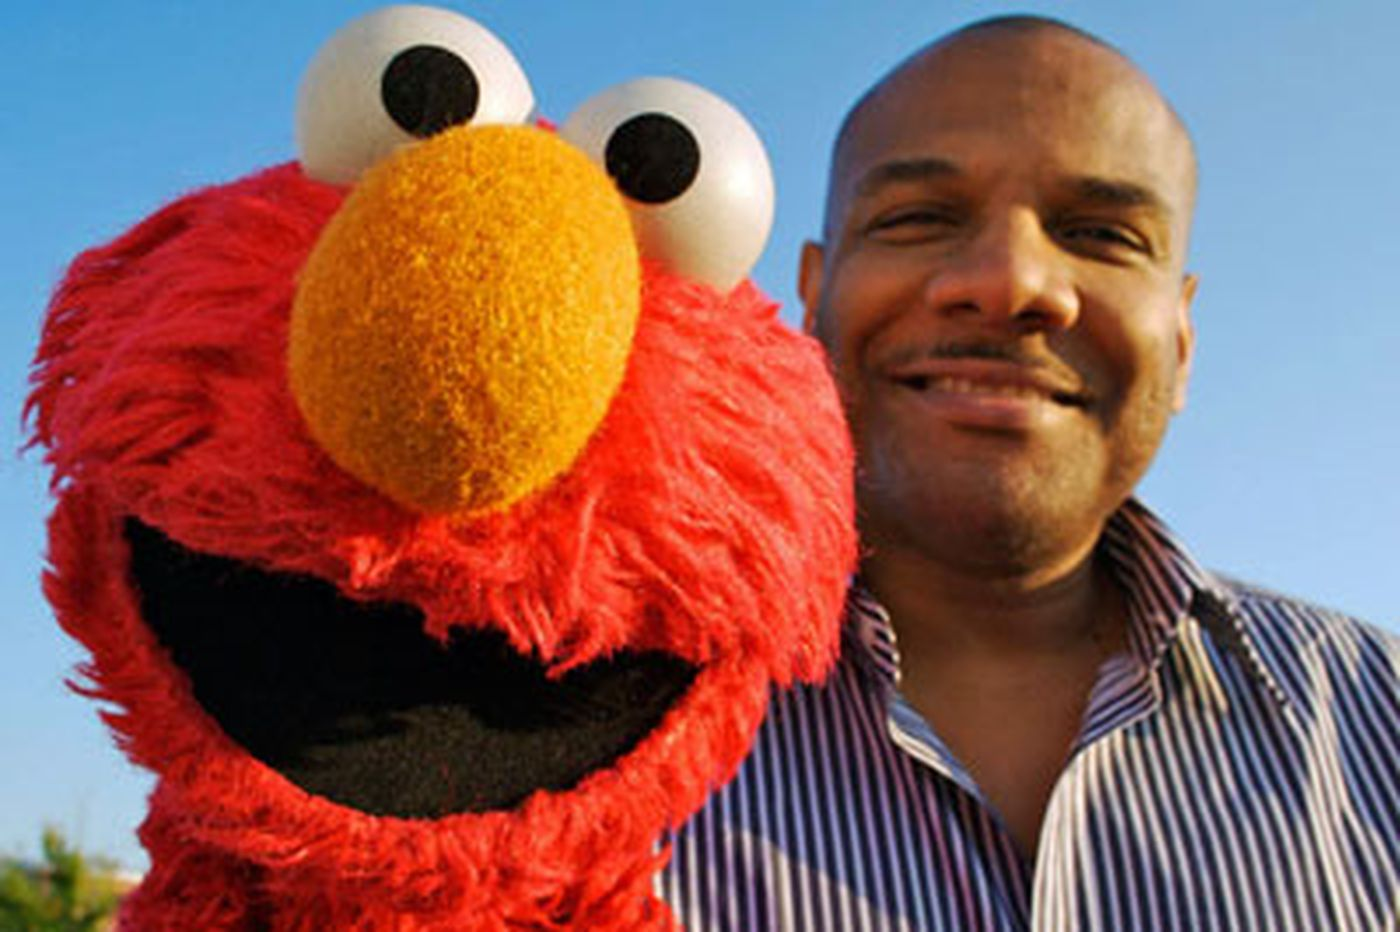 Elmo's alter ego: Portrait of Sesame St. puppeteer